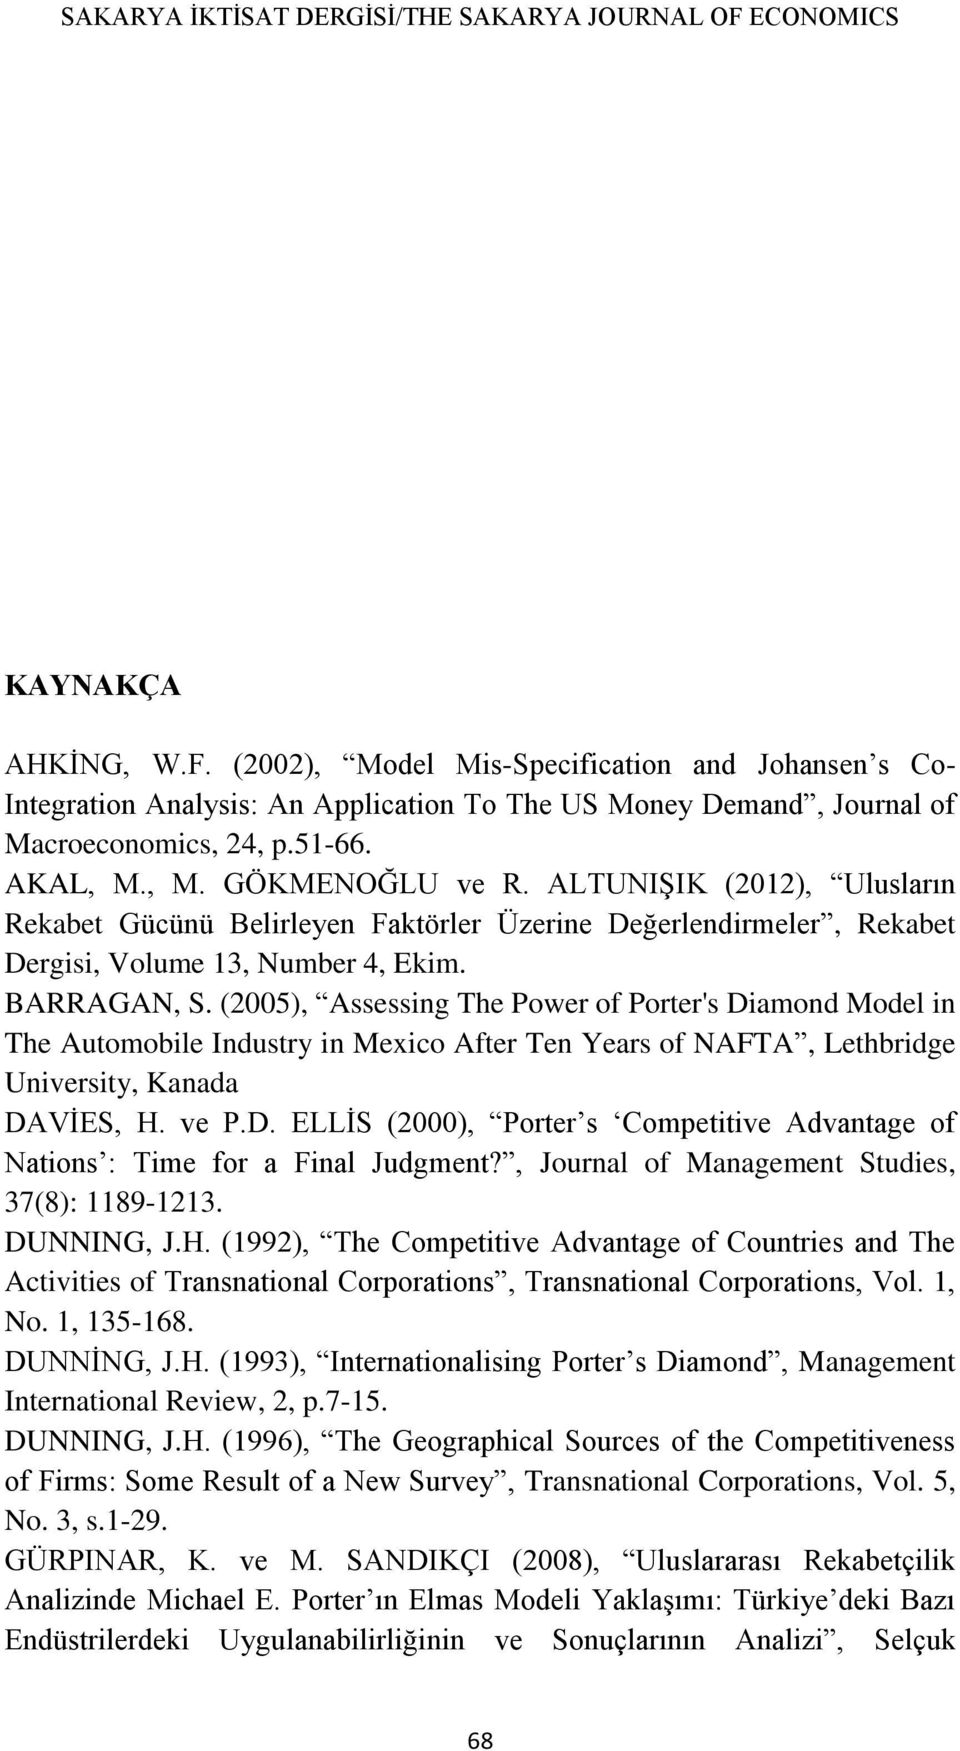 (2005), Assessing The Power of Porter's Diamond Model in The Automobile Industry in Mexico After Ten Years of NAFTA, Lethbridge University, Kanada DAVİES, H. ve P.D. ELLİS (2000), Porter s Competitive Advantage of Nations : Time for a Final Judgment?